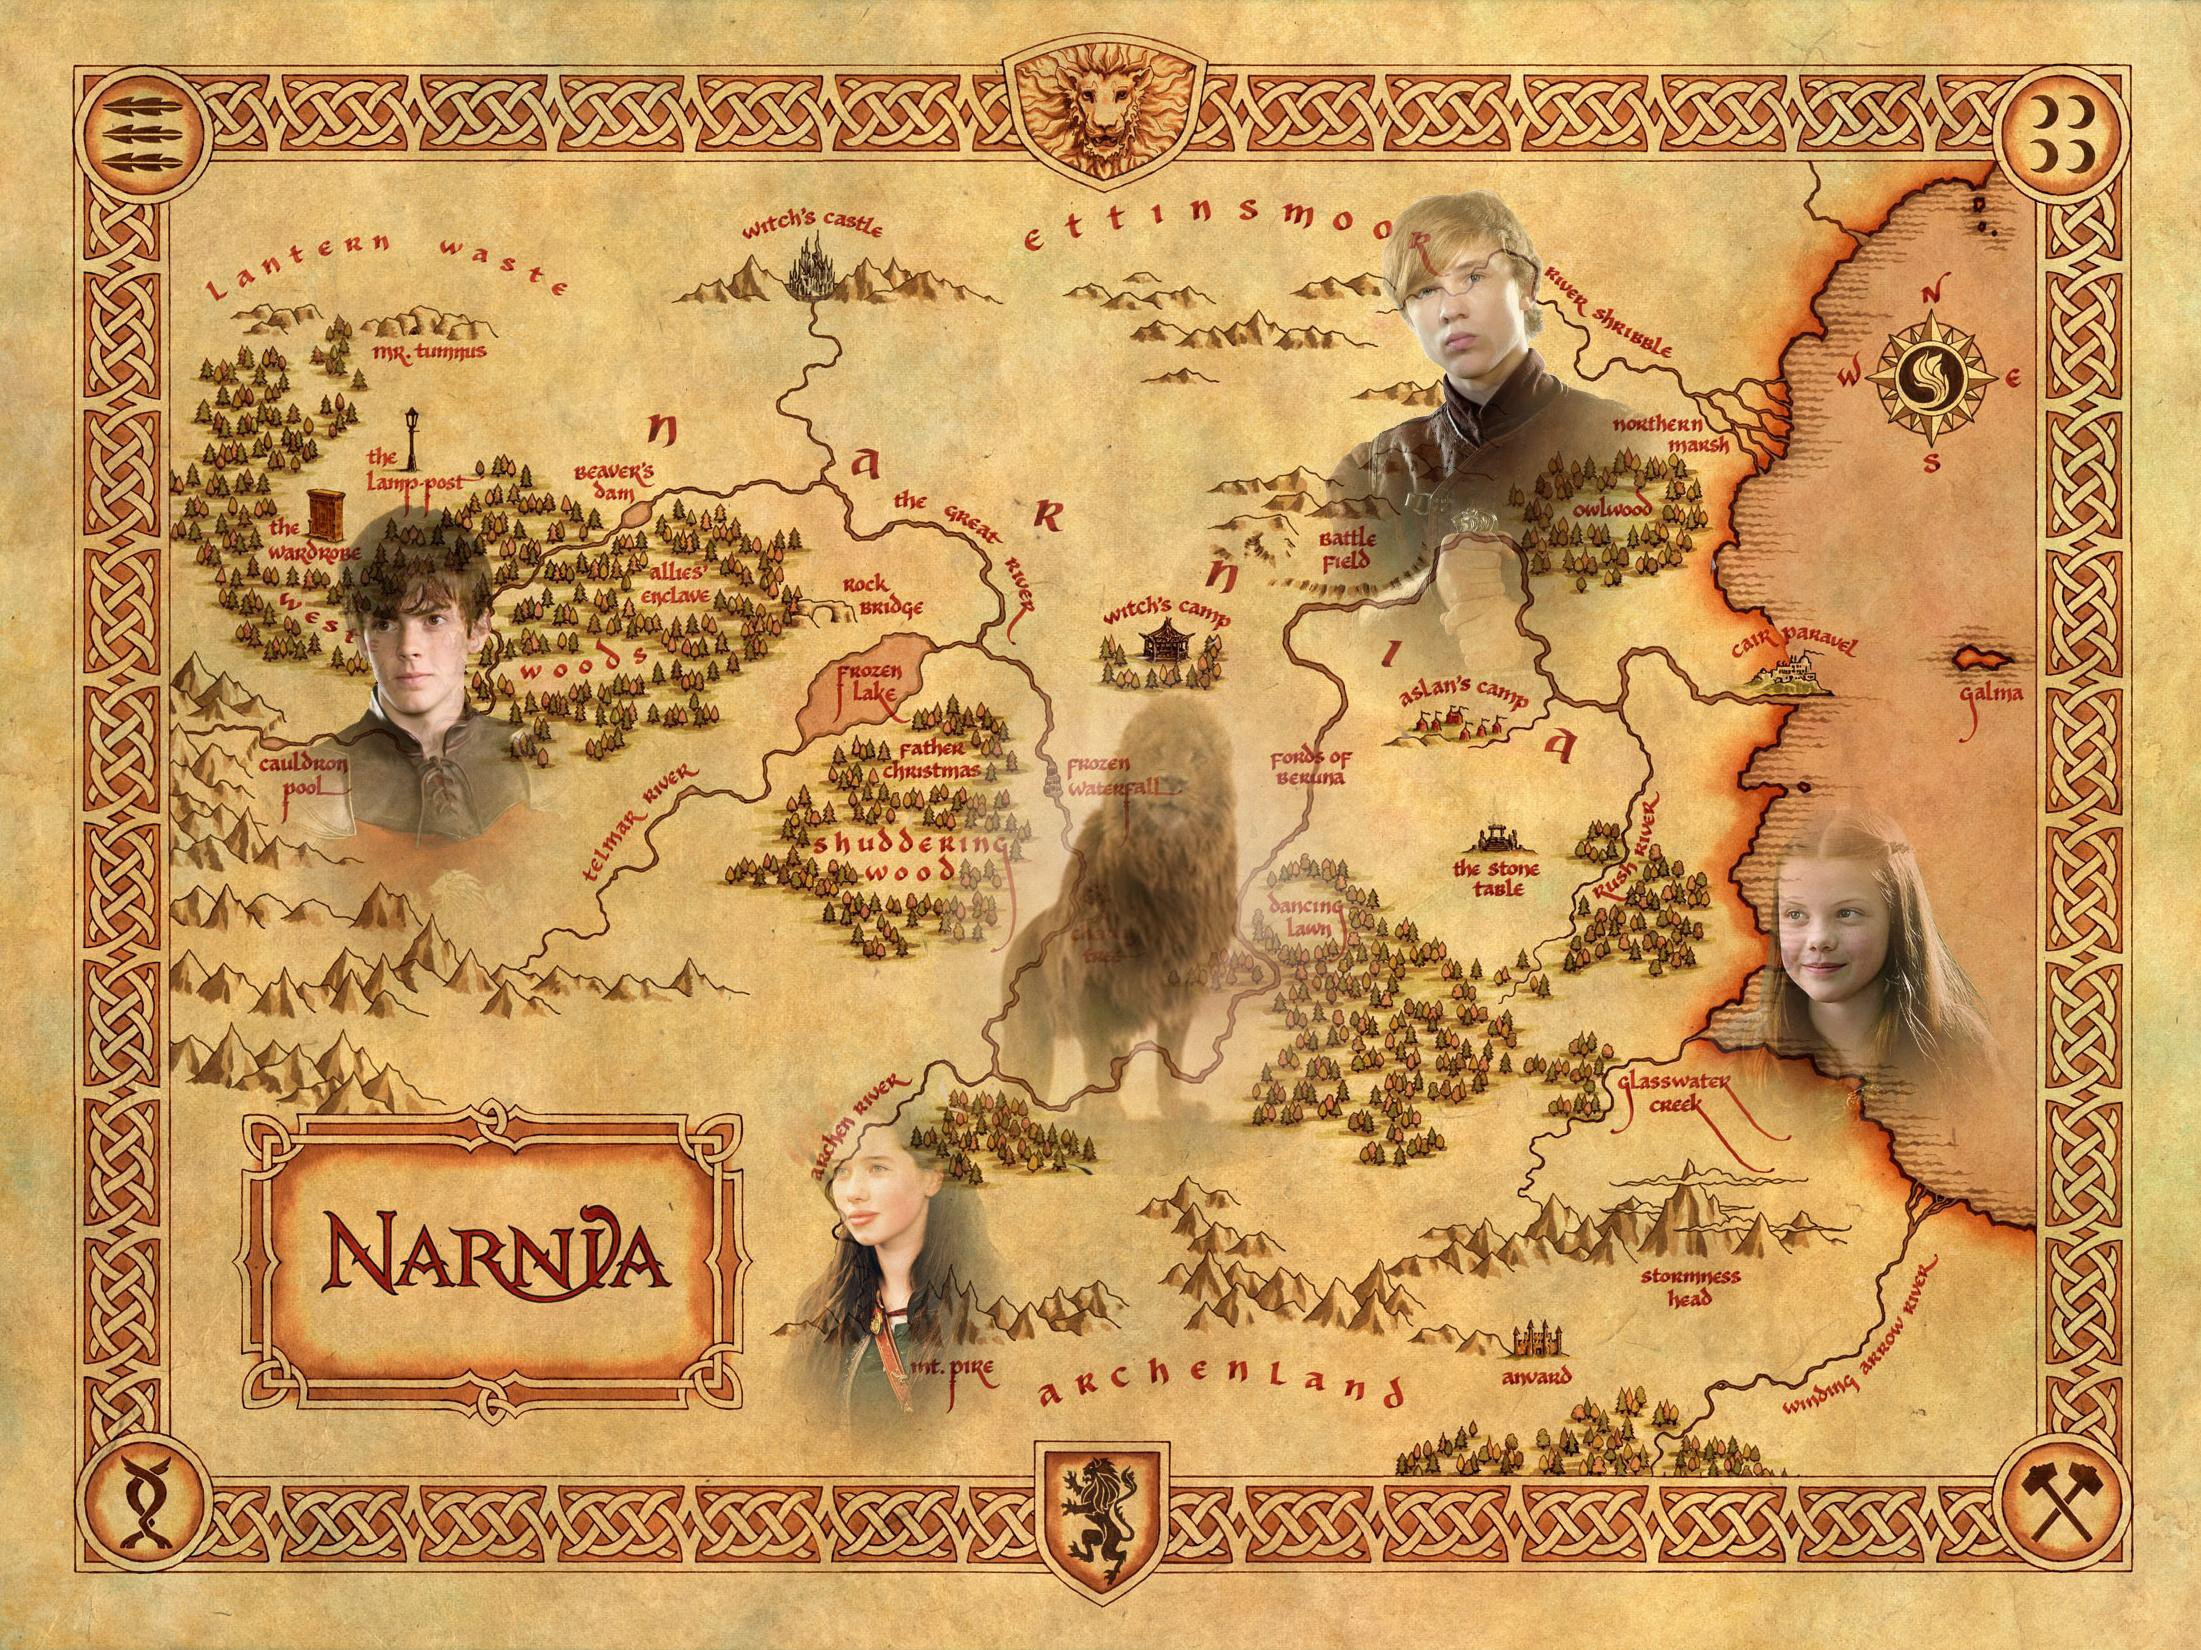 ... fantasy family series book 1narnia chronicles disney poster map